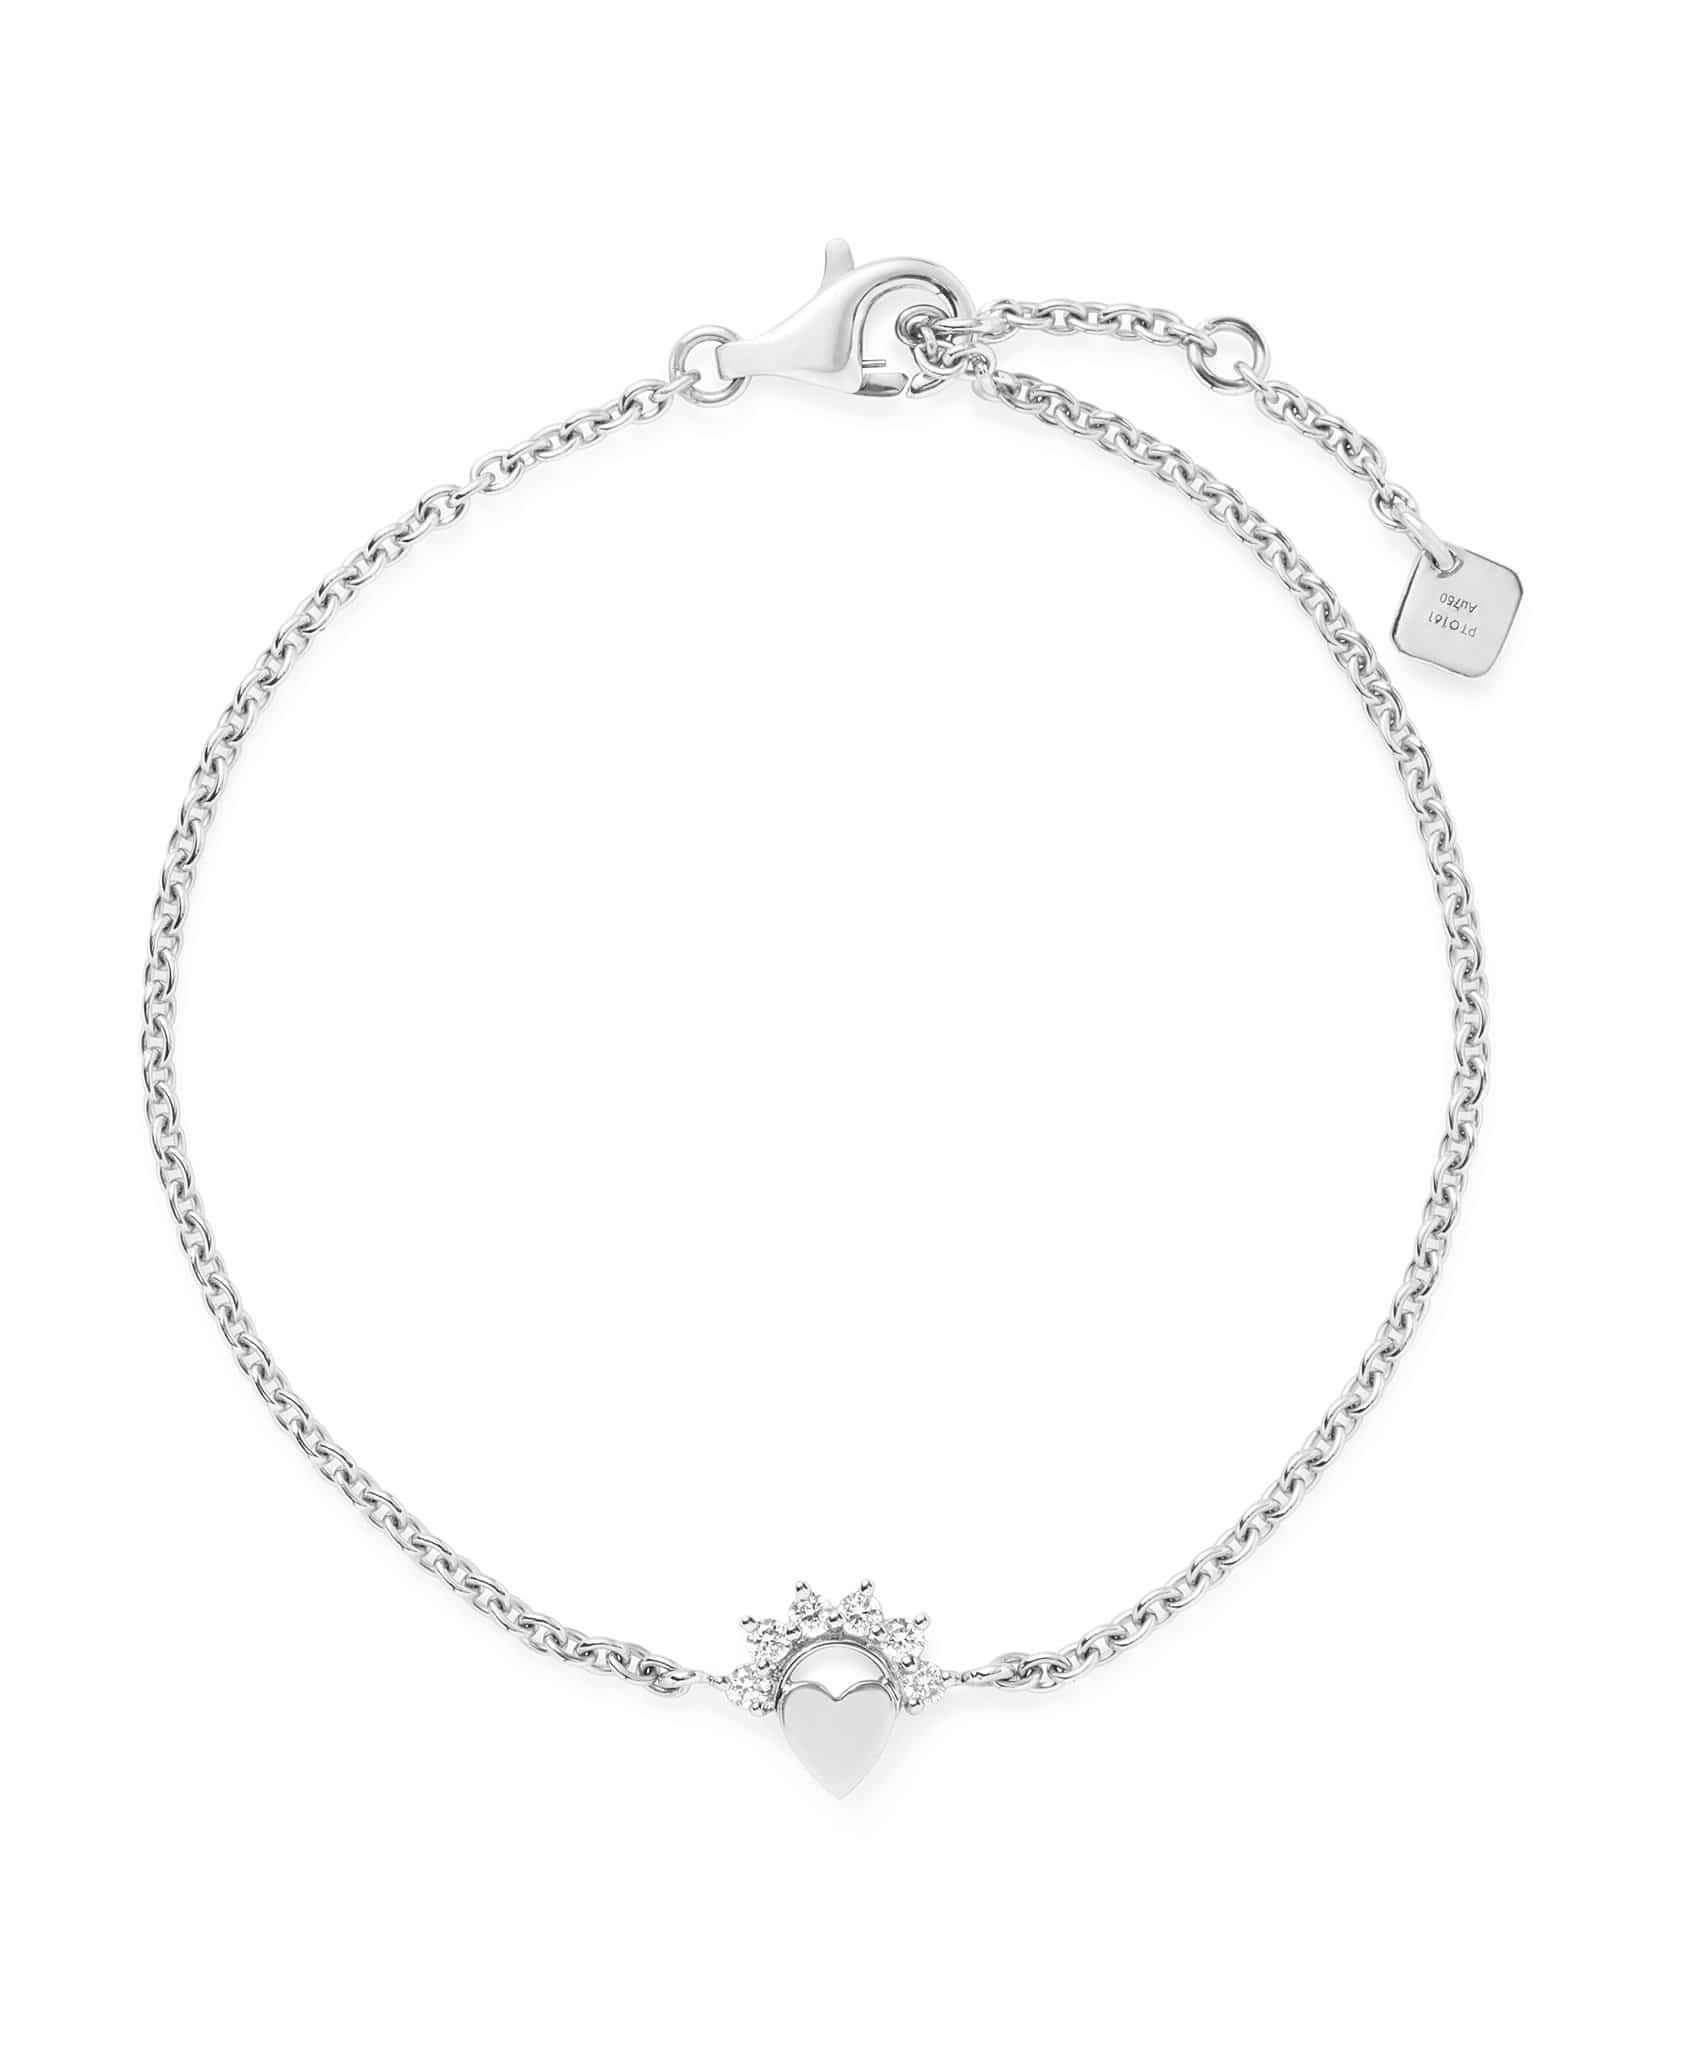 Small Love Bracelet: Discover Luxury Fine Jewelry | Nouvel Heritage || White Gold